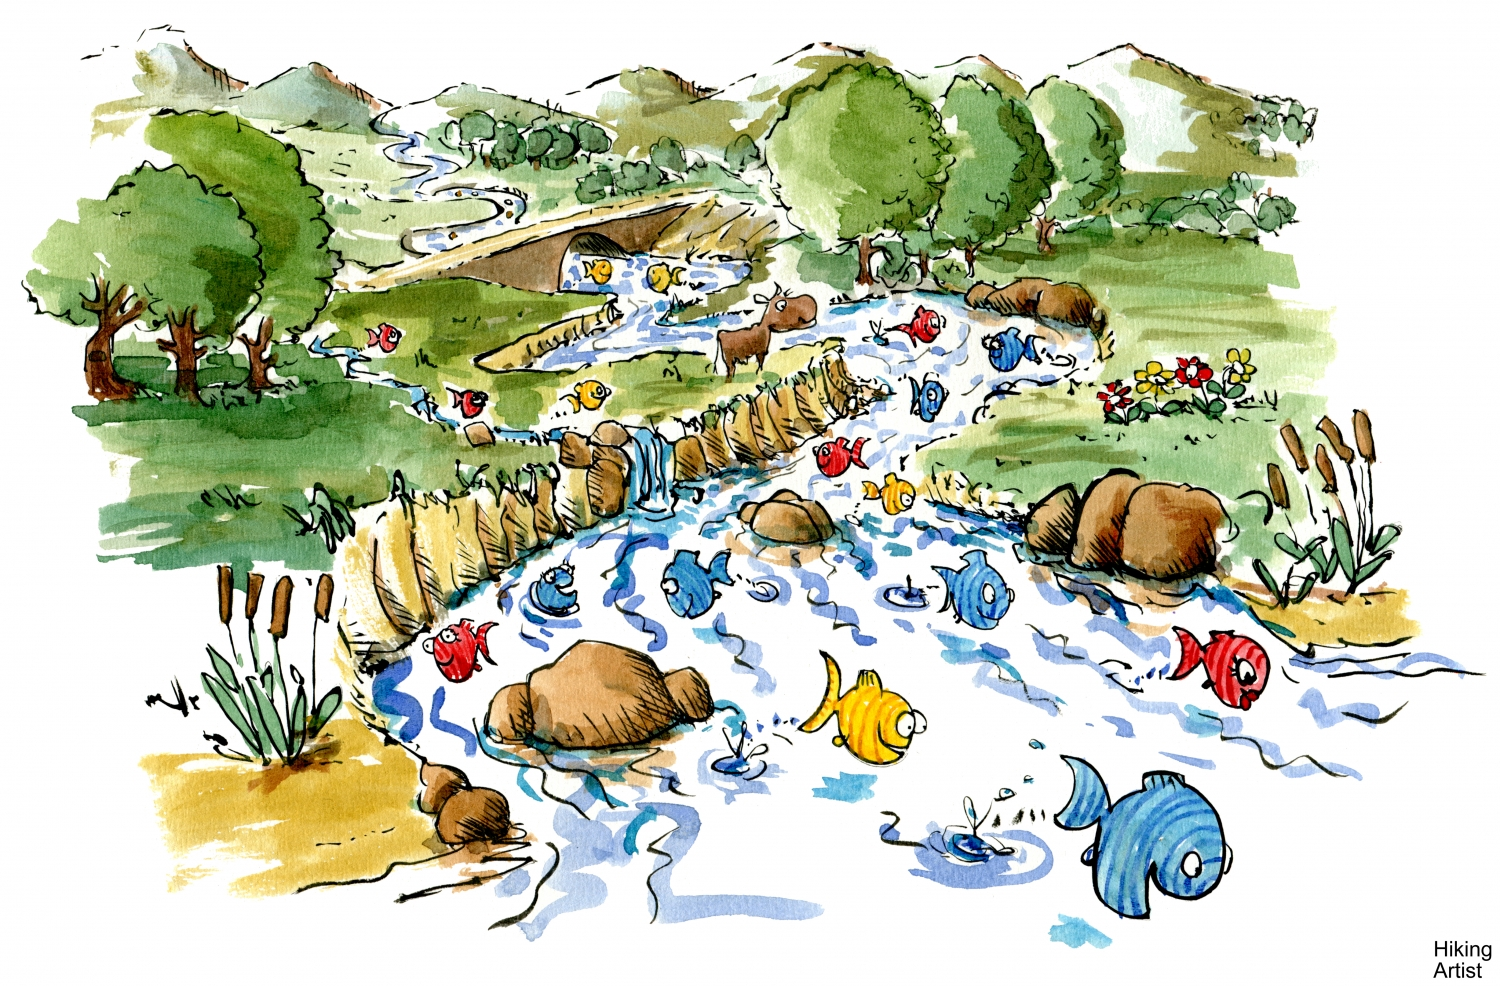 Polluted river clipart clip art transparent fish-swimming in river illustration | The Hiking Artist project clip art transparent